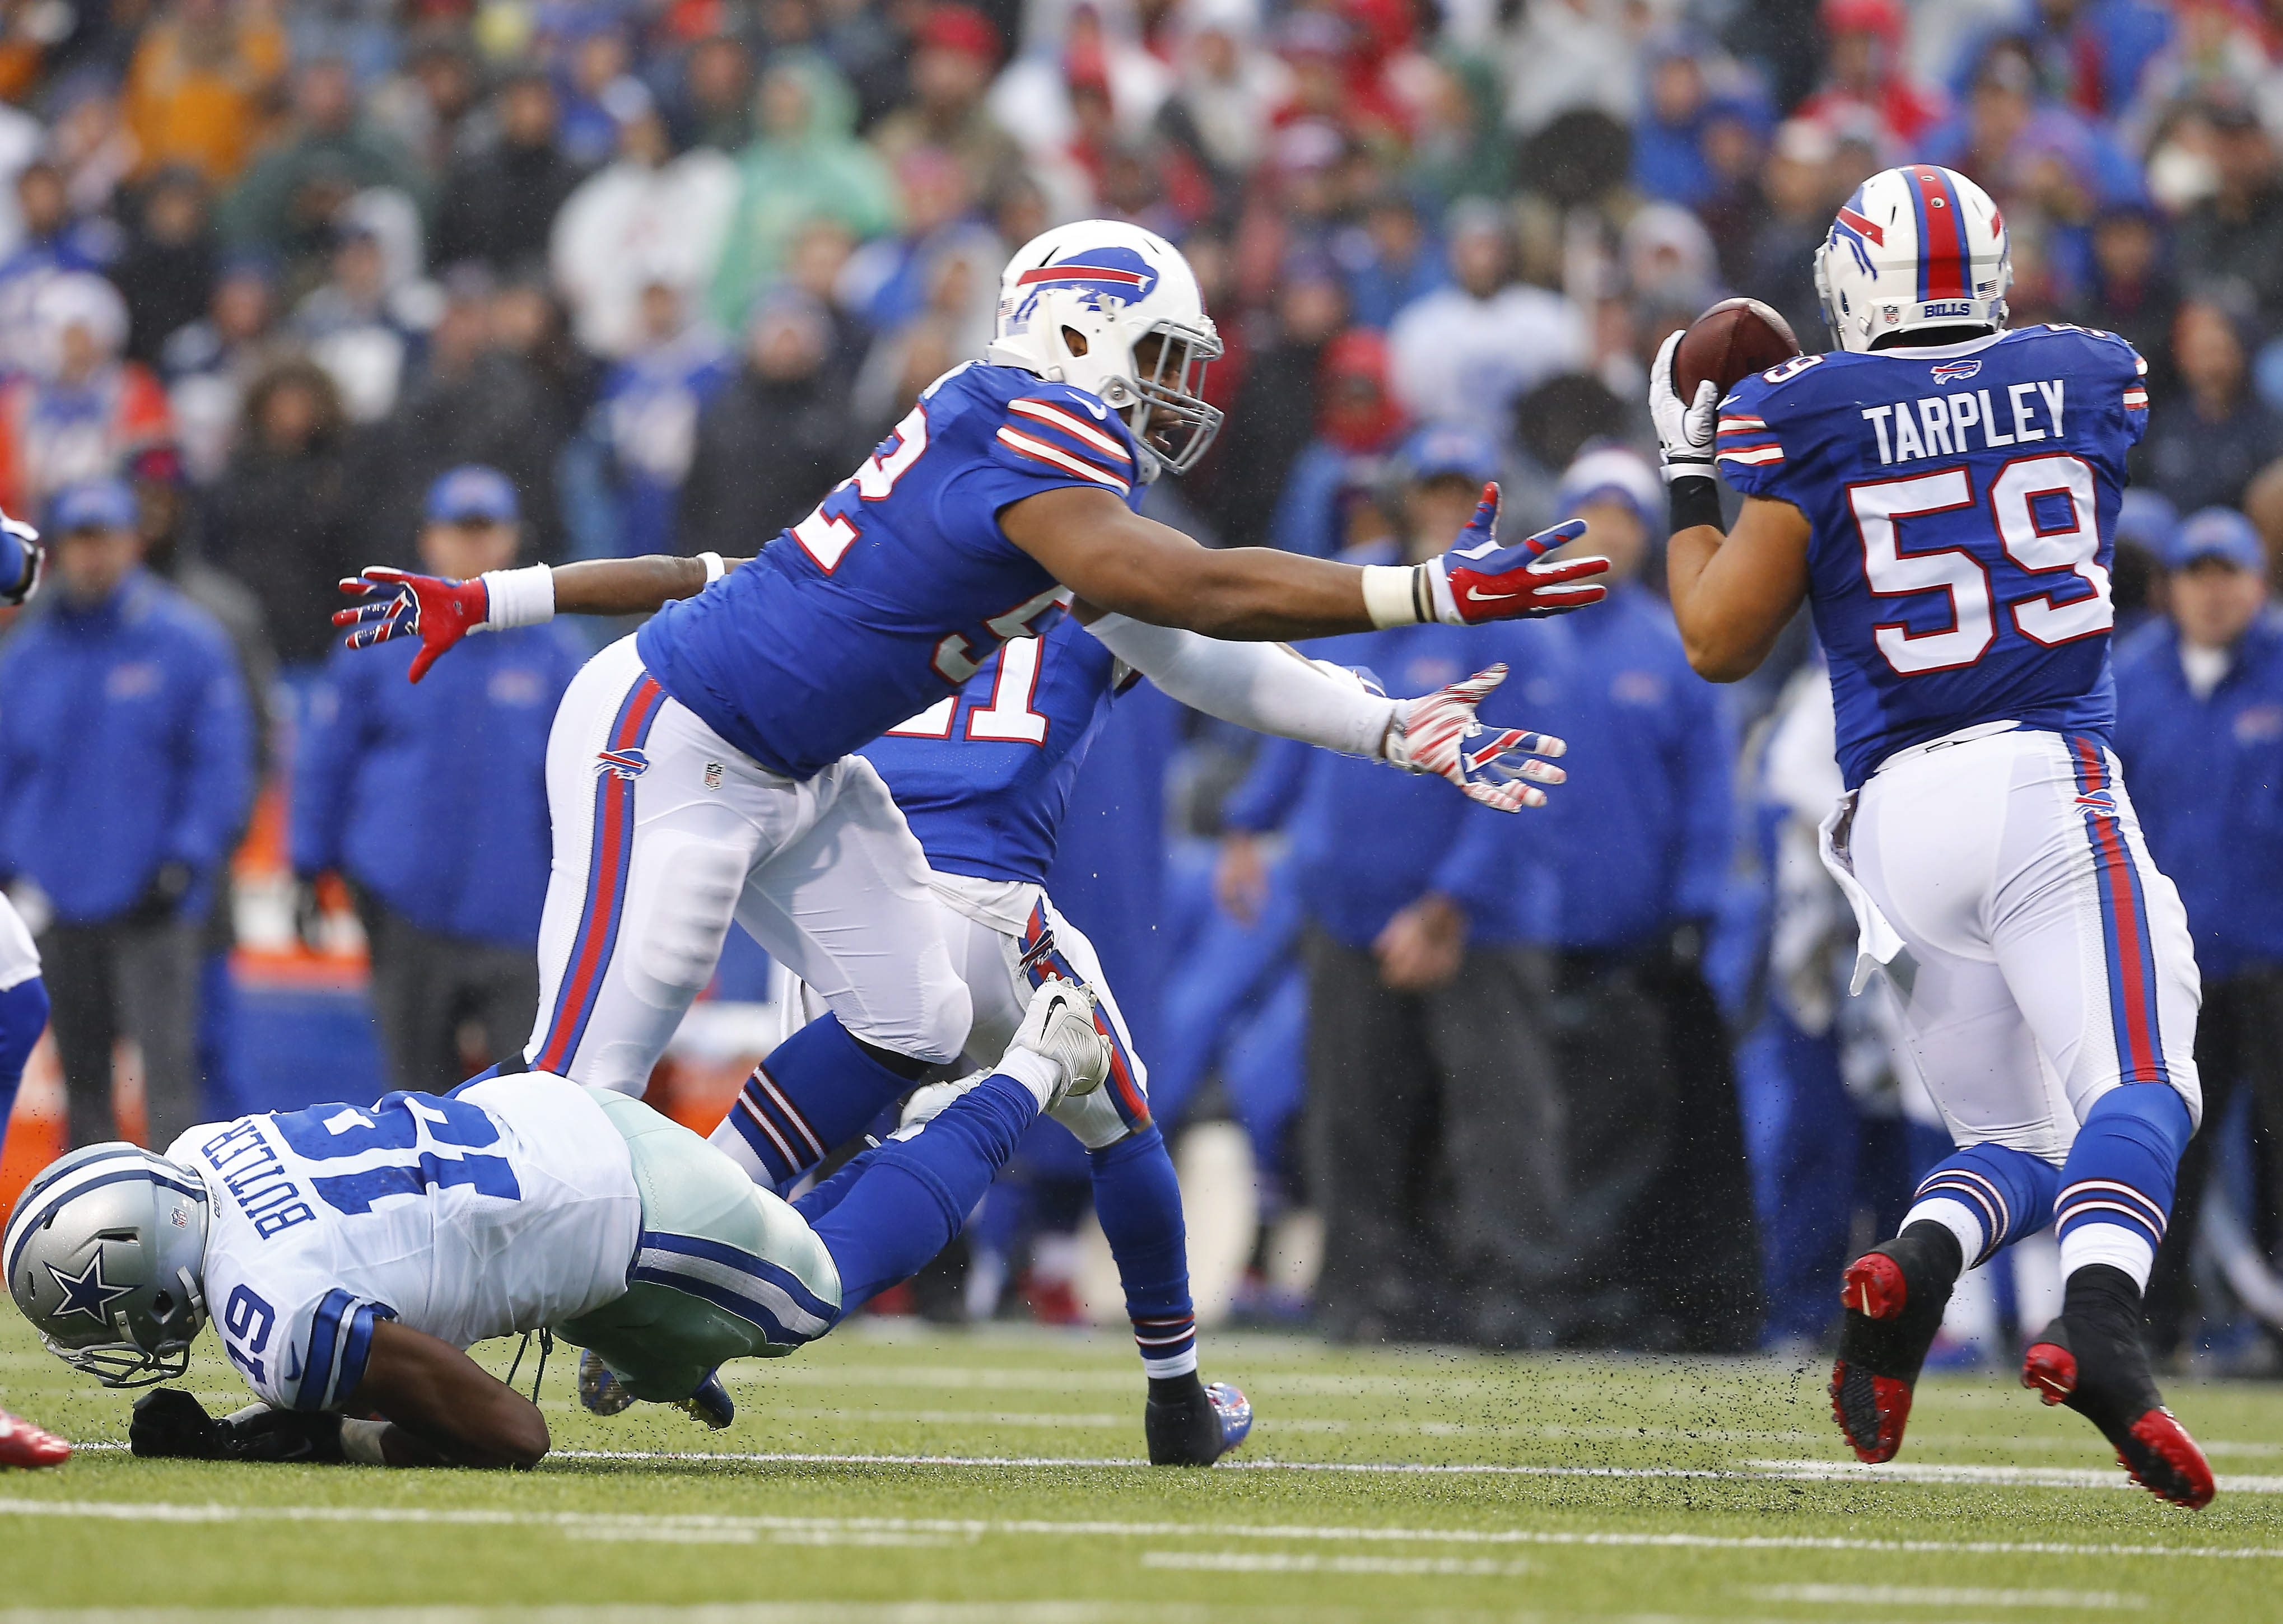 The Bills' AJ Tarpley intercepts a pass intended for the Cowboys' Brice Butler in the third quarter of last December's game.